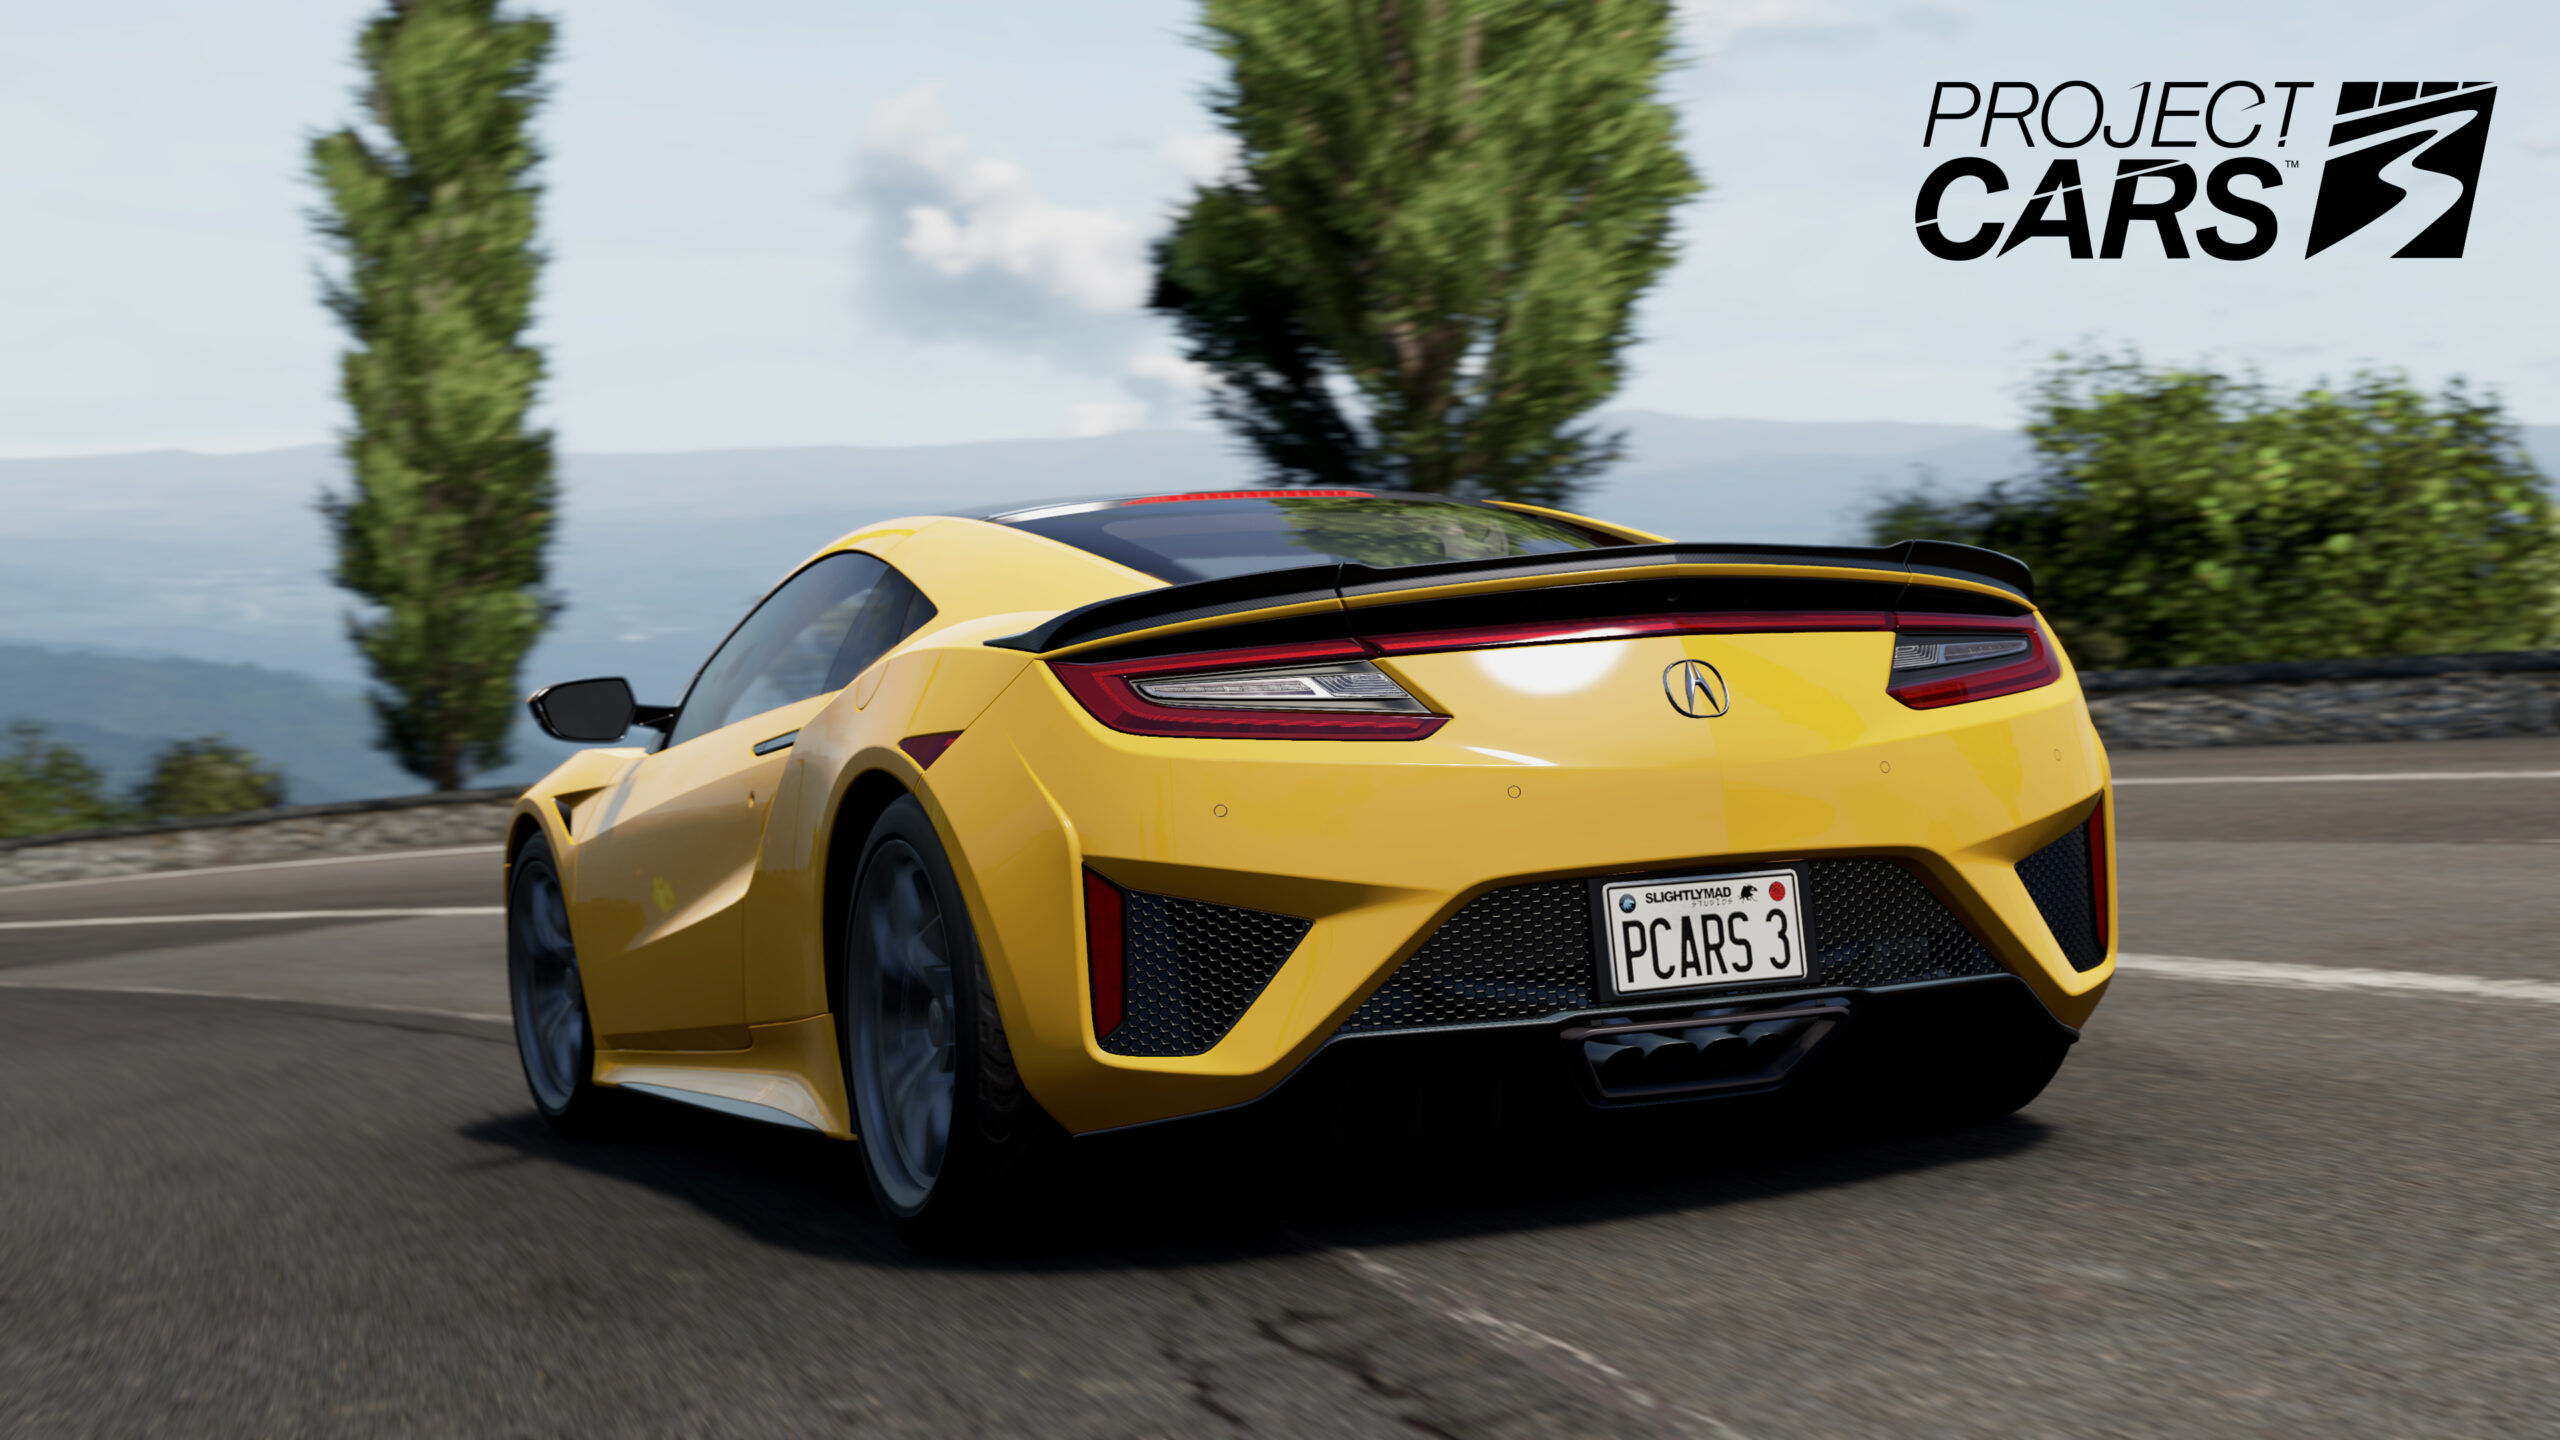 Project CARS 3 Is Coming Out August 28th on PC, PlayStation 4 and Xbox One - Wccftech